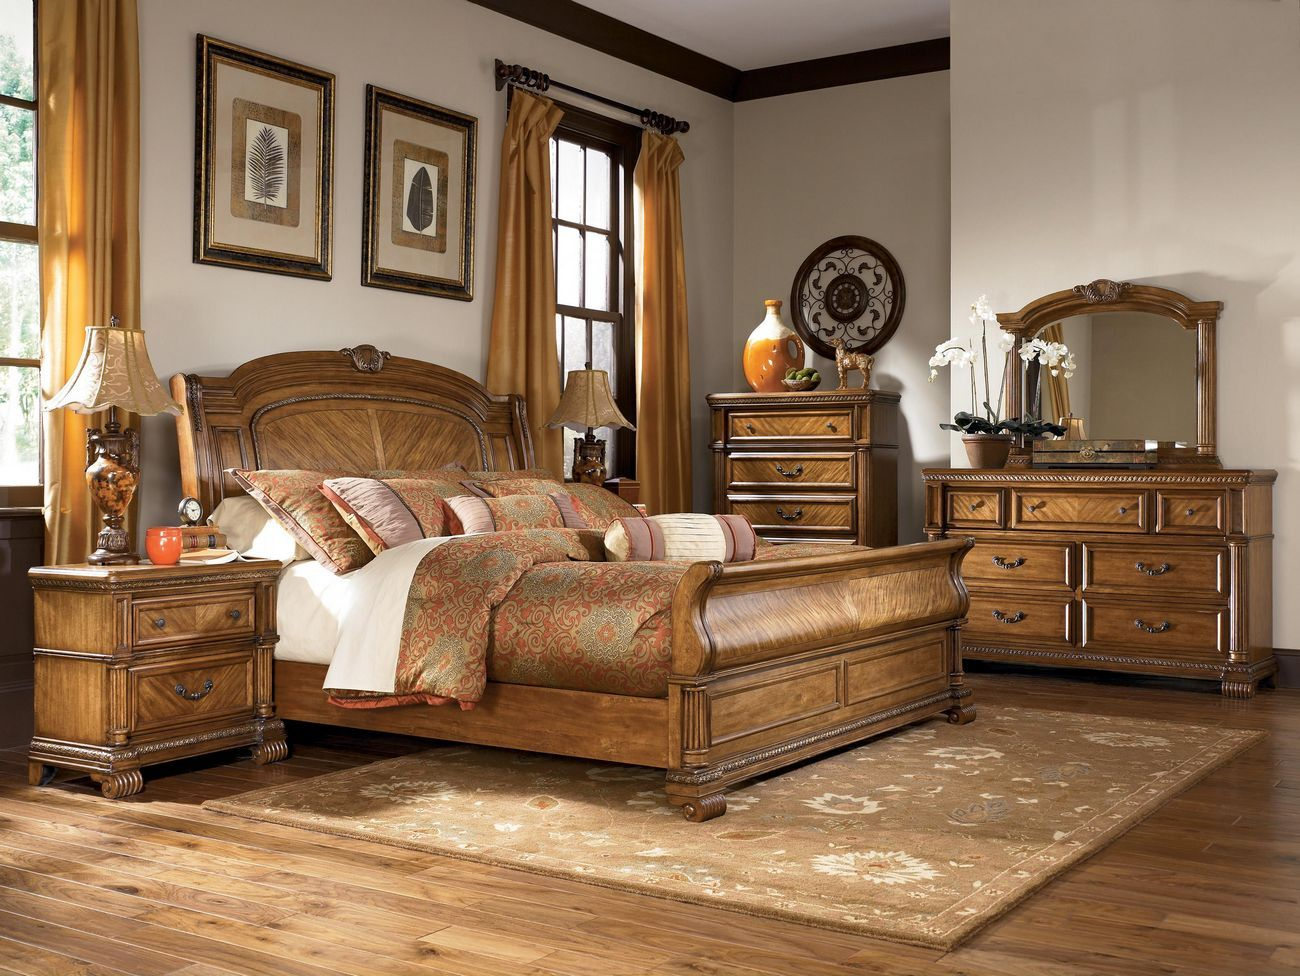 Ashley Millennium Clearwater B680 King Sleigh Bedroom Set Pinterest King Size Bedrooms